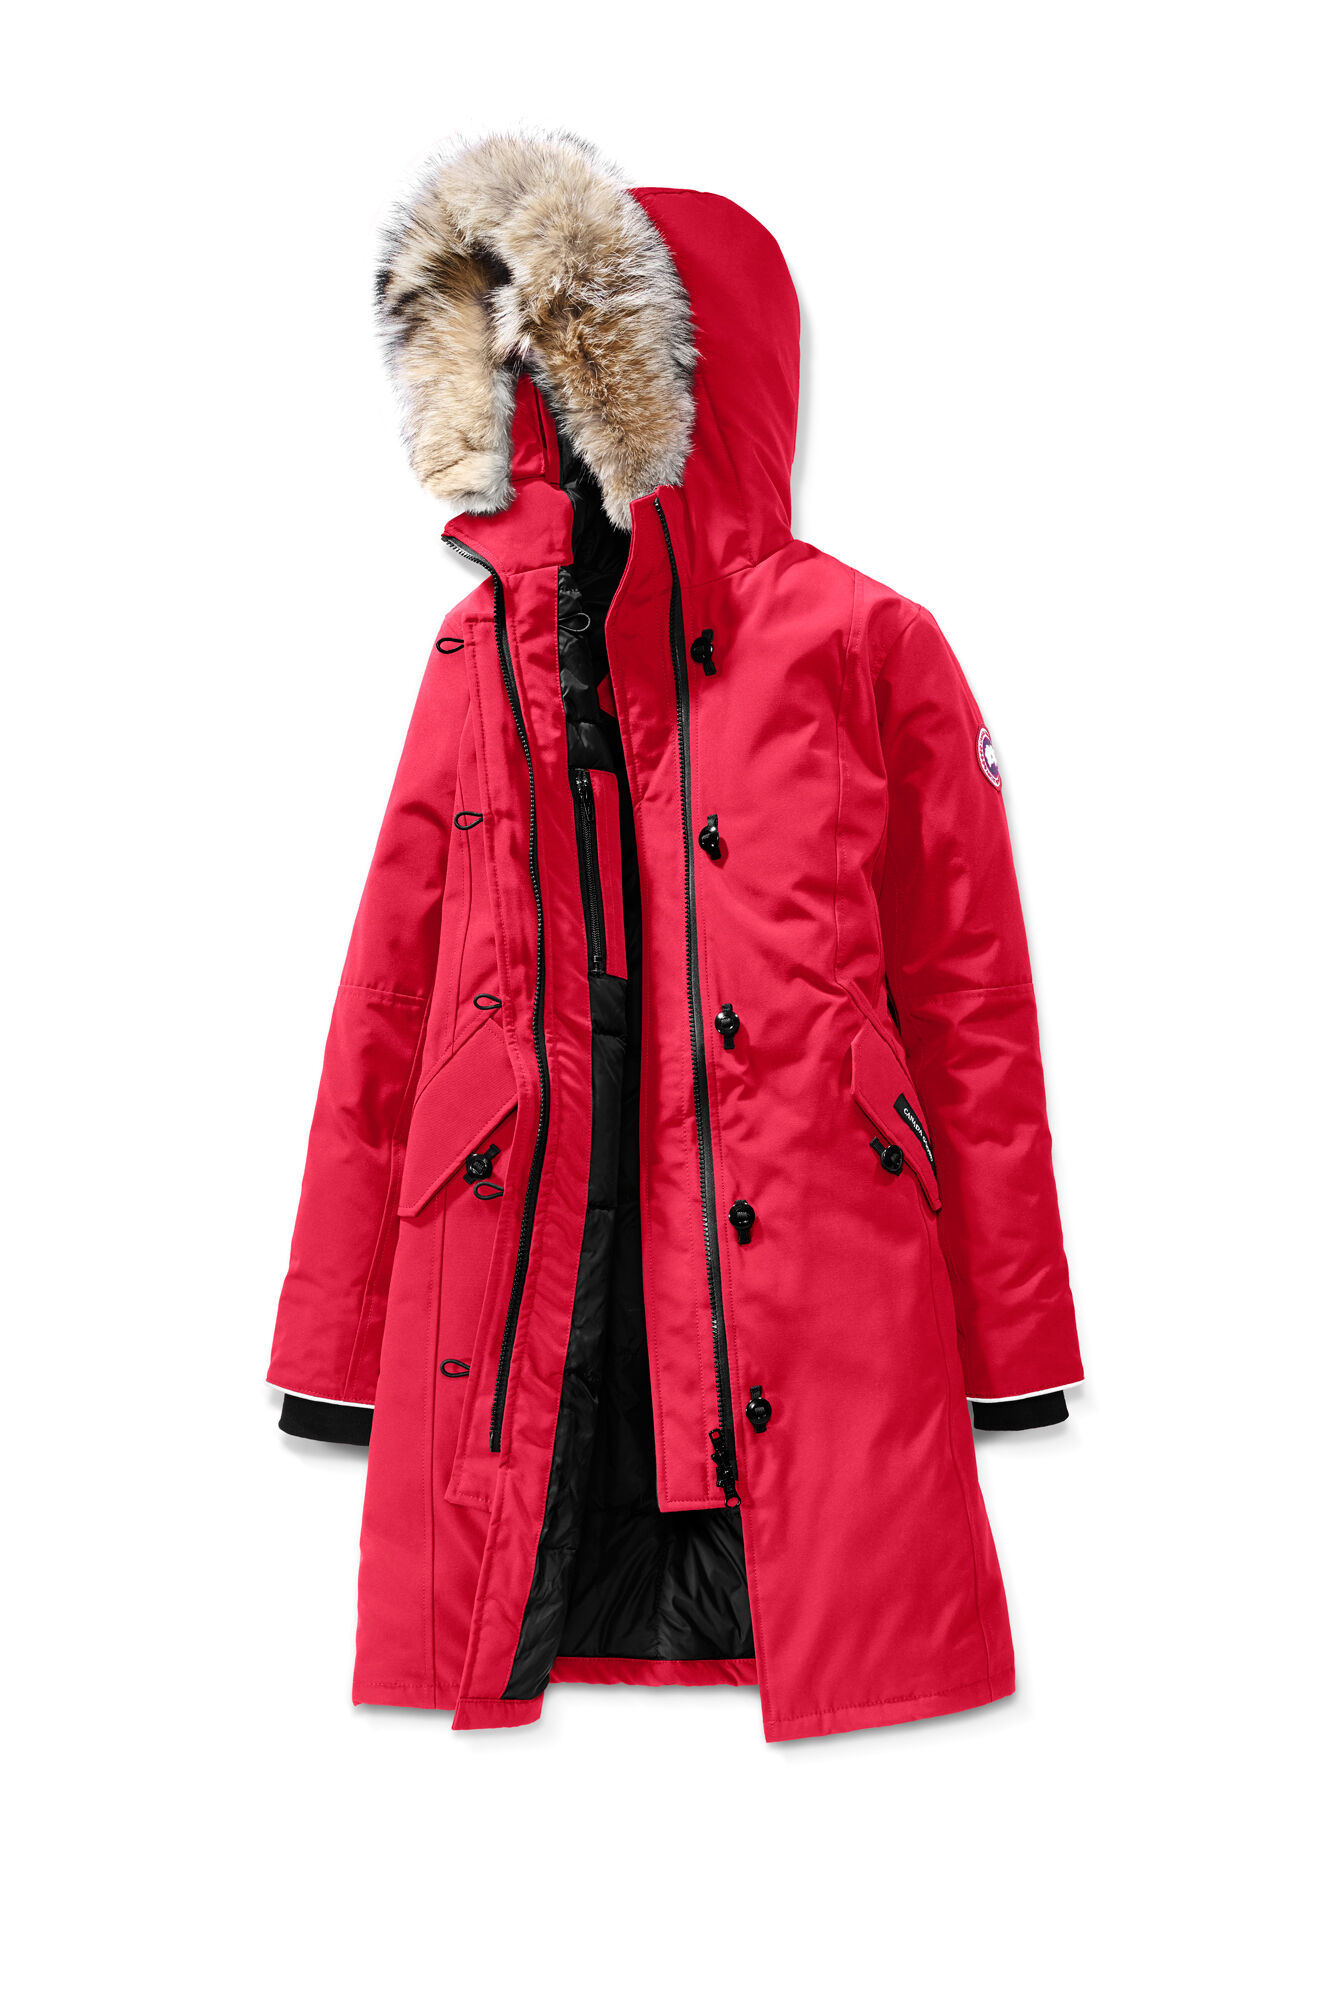 Canada Goose victoria parka outlet shop - Kids Extreme Weather Outerwear | Canada Goose?